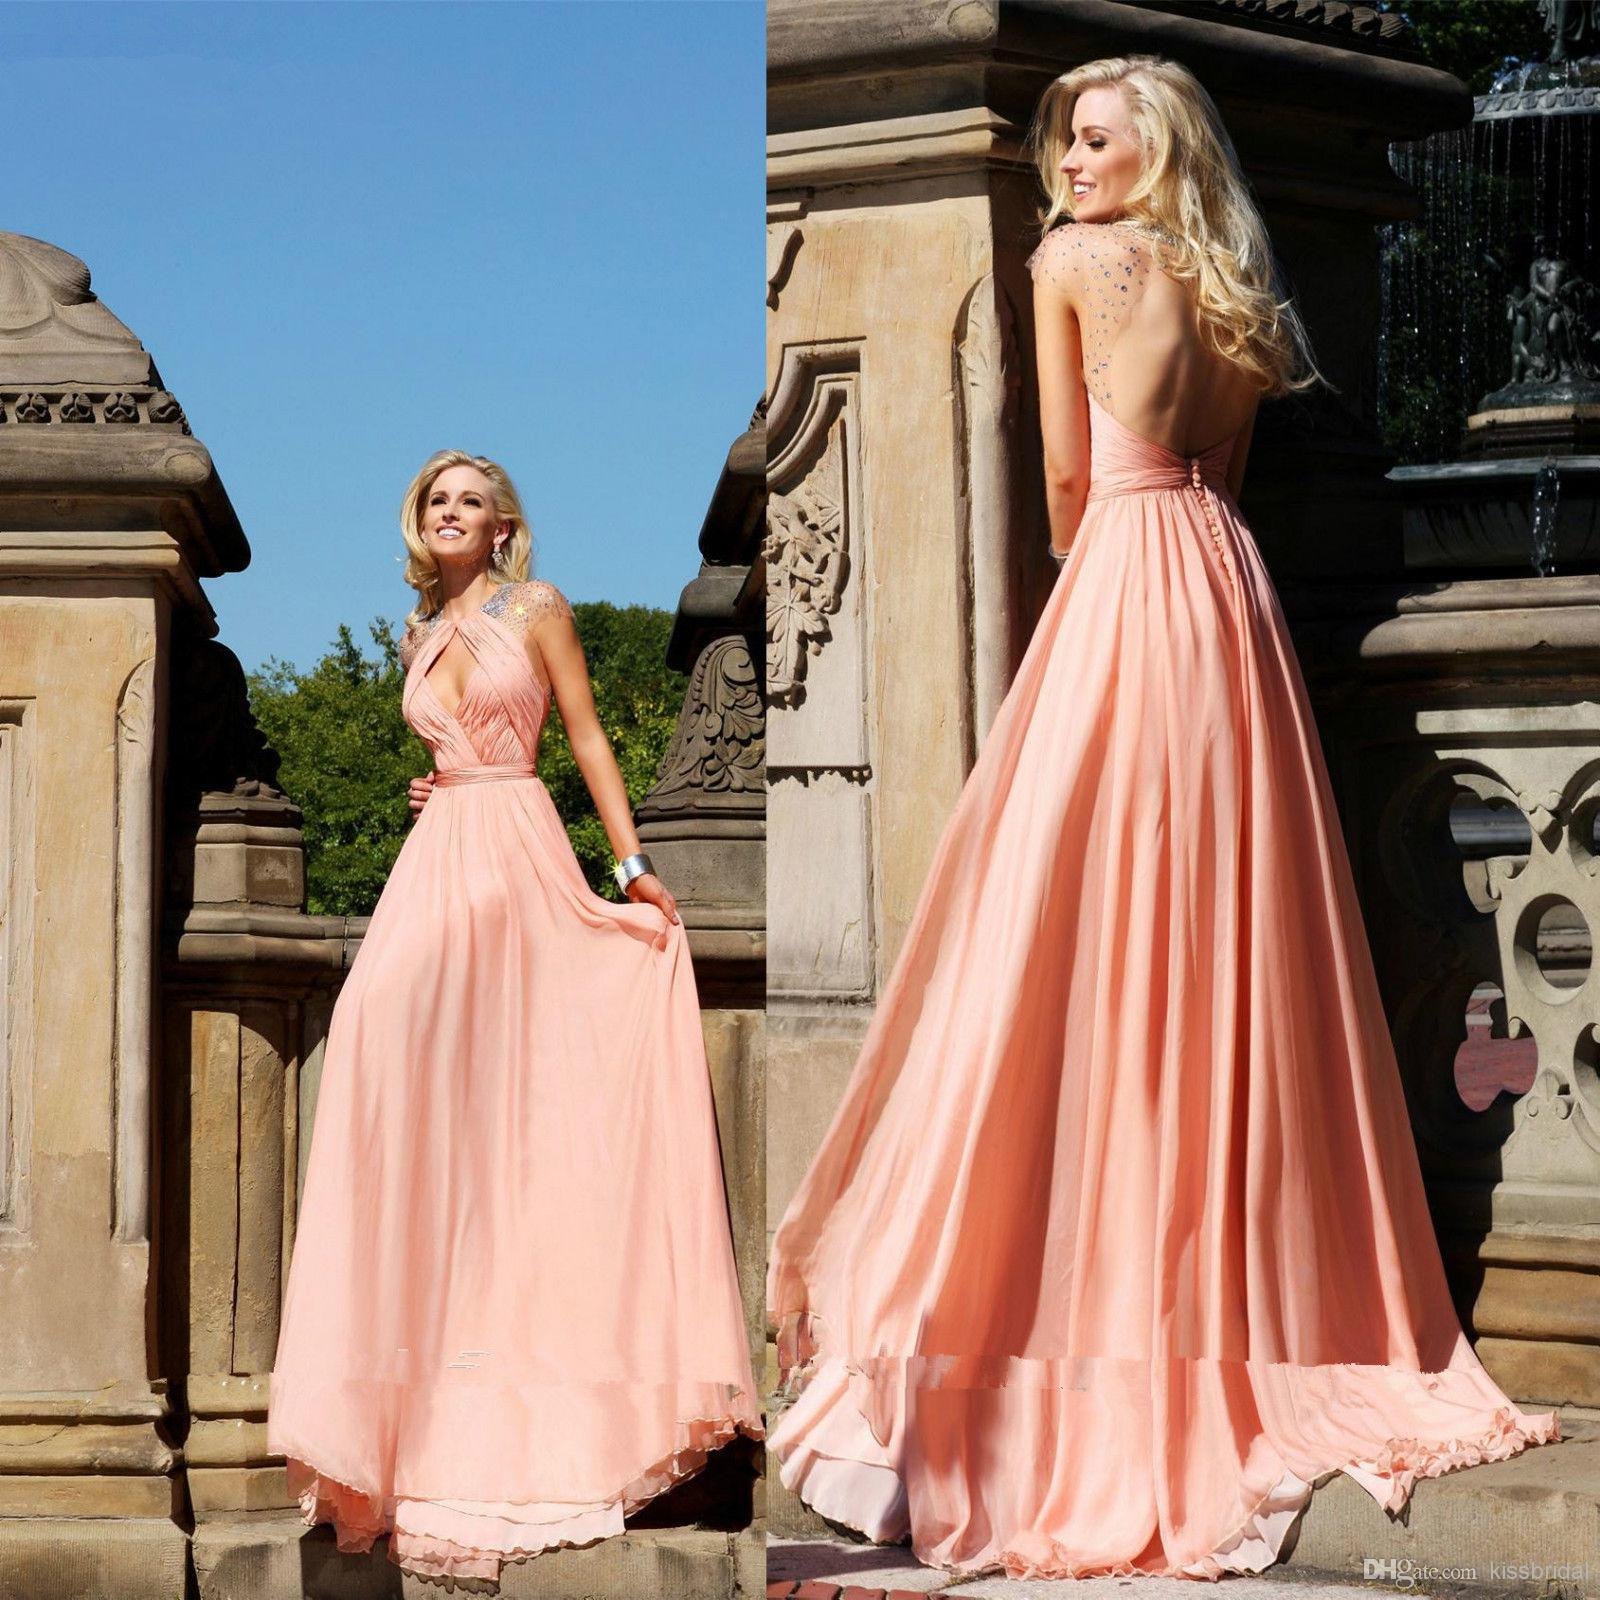 Wholesale 2014 Attractive Round Neck Prom Dresses Beaded Cap Sleeve Backless A-Line Floor-Length Chiffon Tarik Ediz Evening Gowns Party Dress, Free shipping, $119.0/Piece | DHgate Mobile